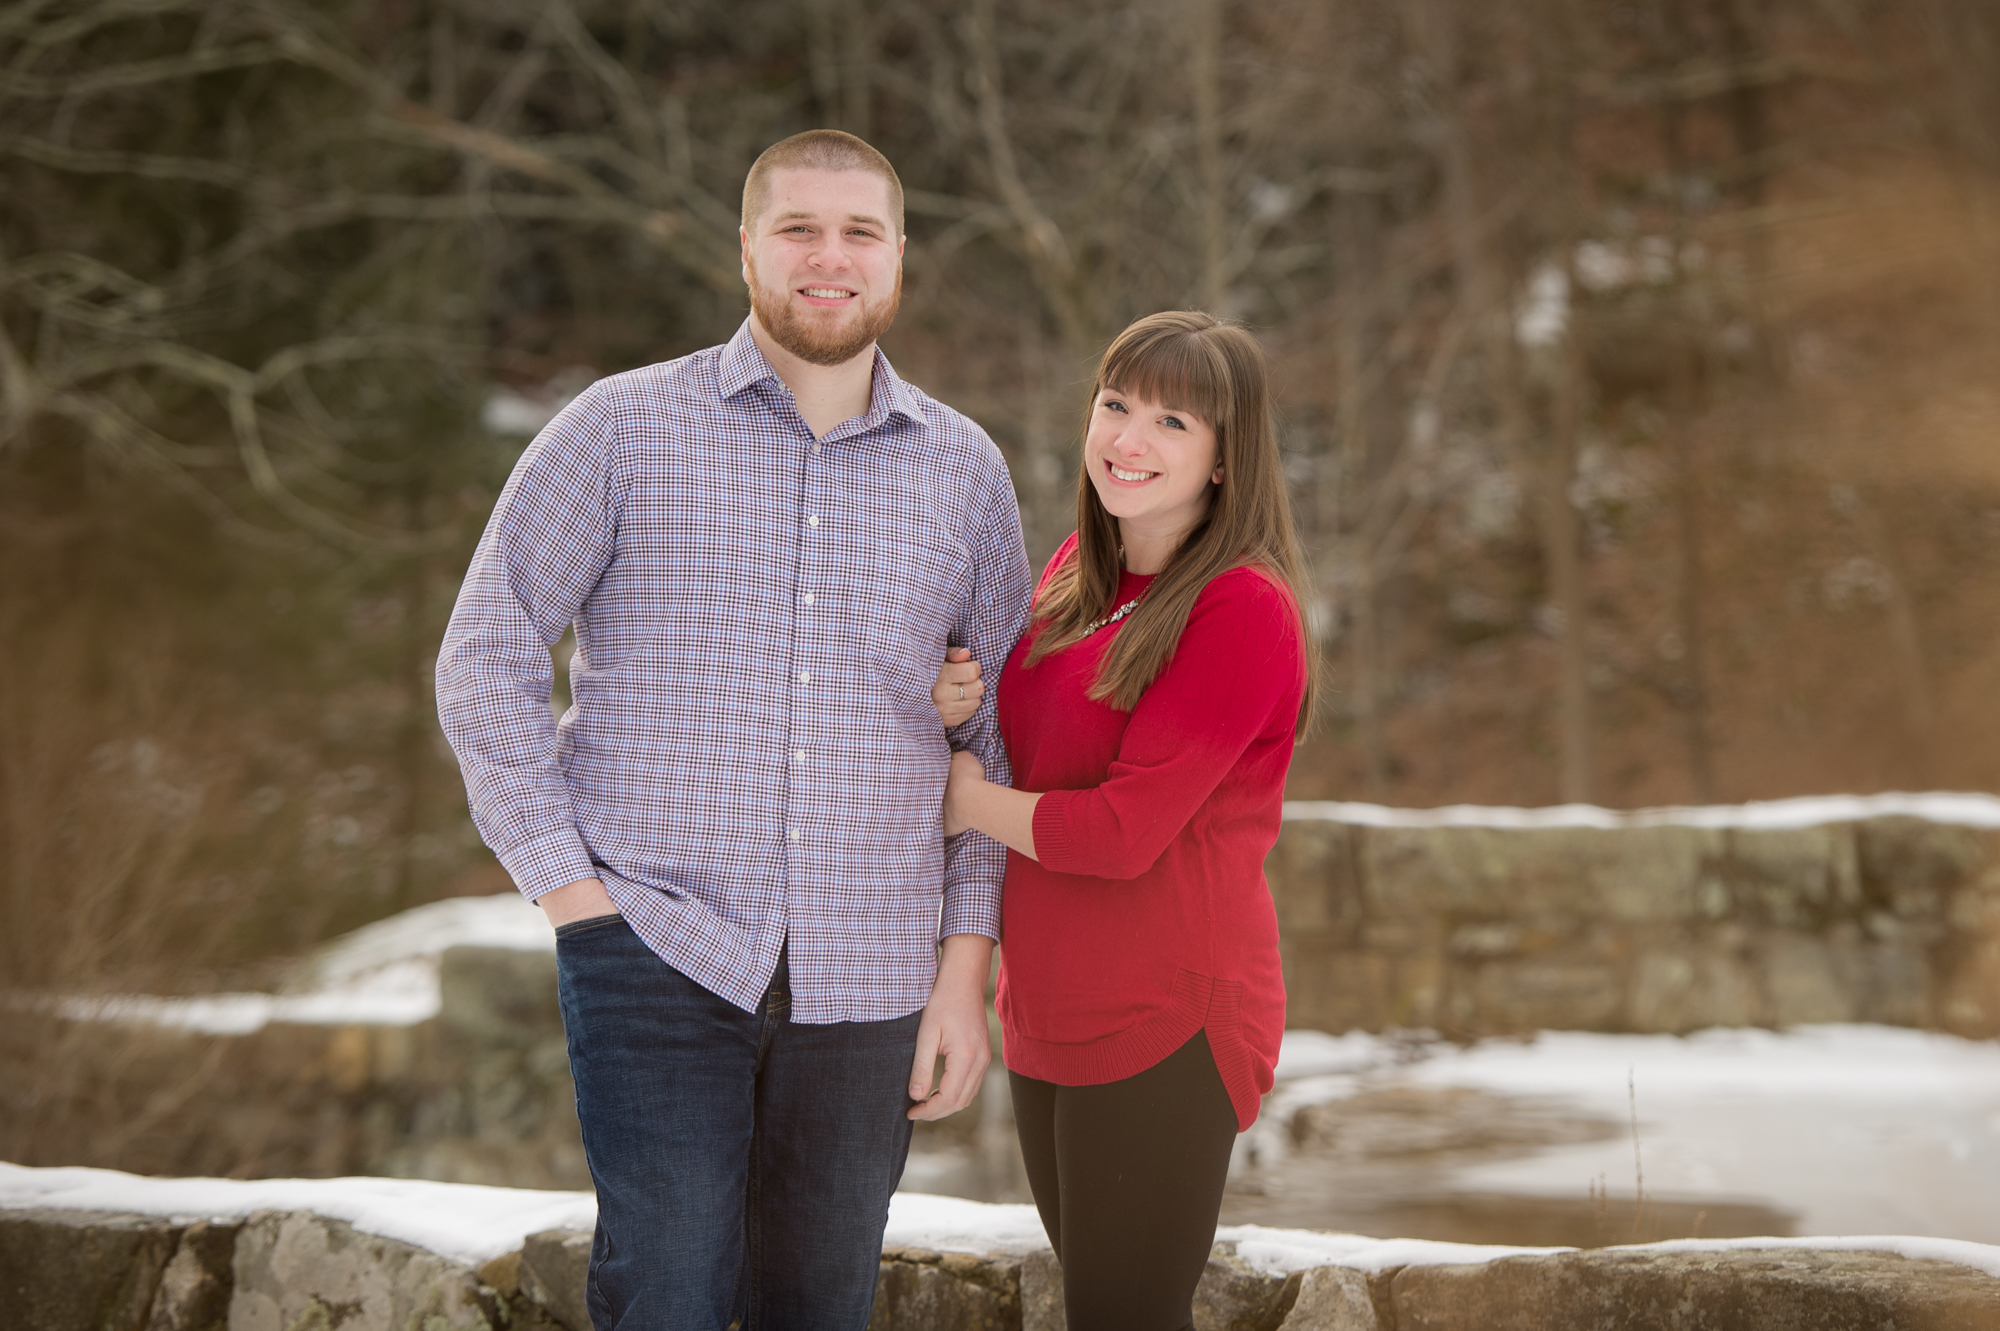 southford_falls_engagement-0001.jpg